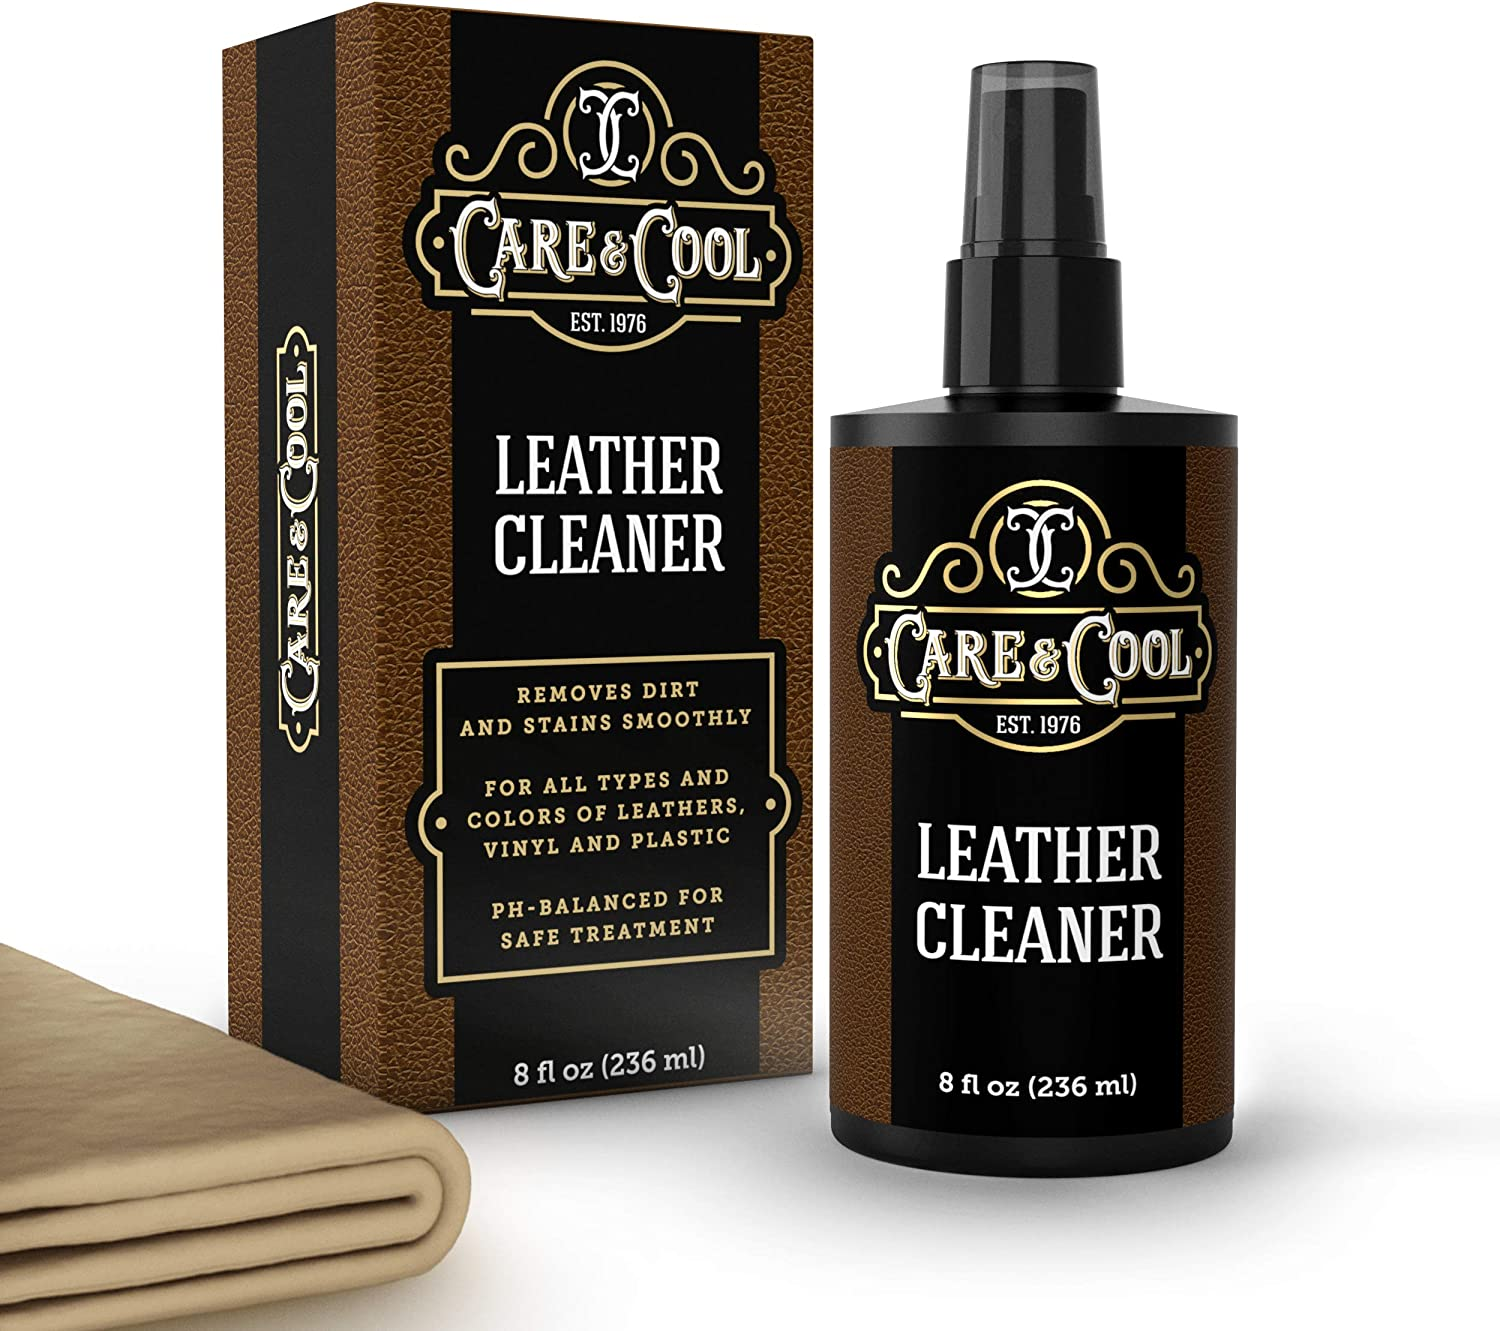 Care & Cool Leather Cleaner with Premium Hi-tech Cloth. The Best Universal Leather Cleaner for Shoes, Sneakers, Jackets, Upholstery and Much More. Ensures the Breathability of Leather Products, Essential to Durability, Restoring Vividness and Brightness. Setting the Standards in Leather Care since 1976.